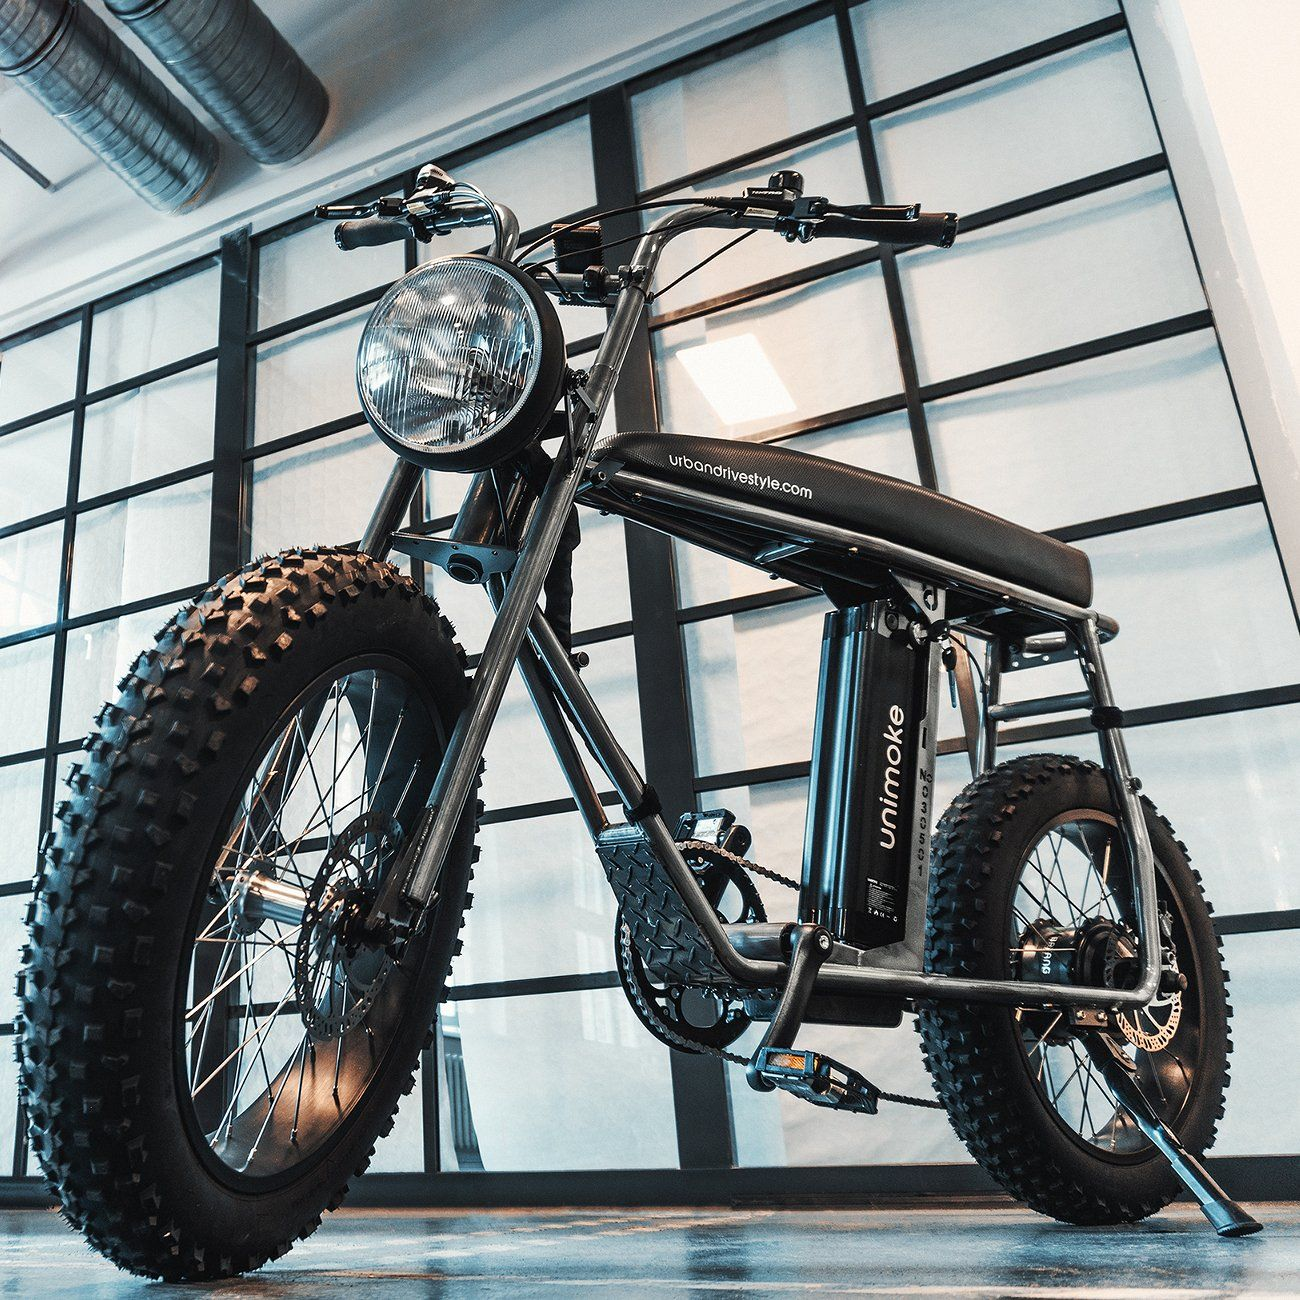 Pin on all motorcycle everything